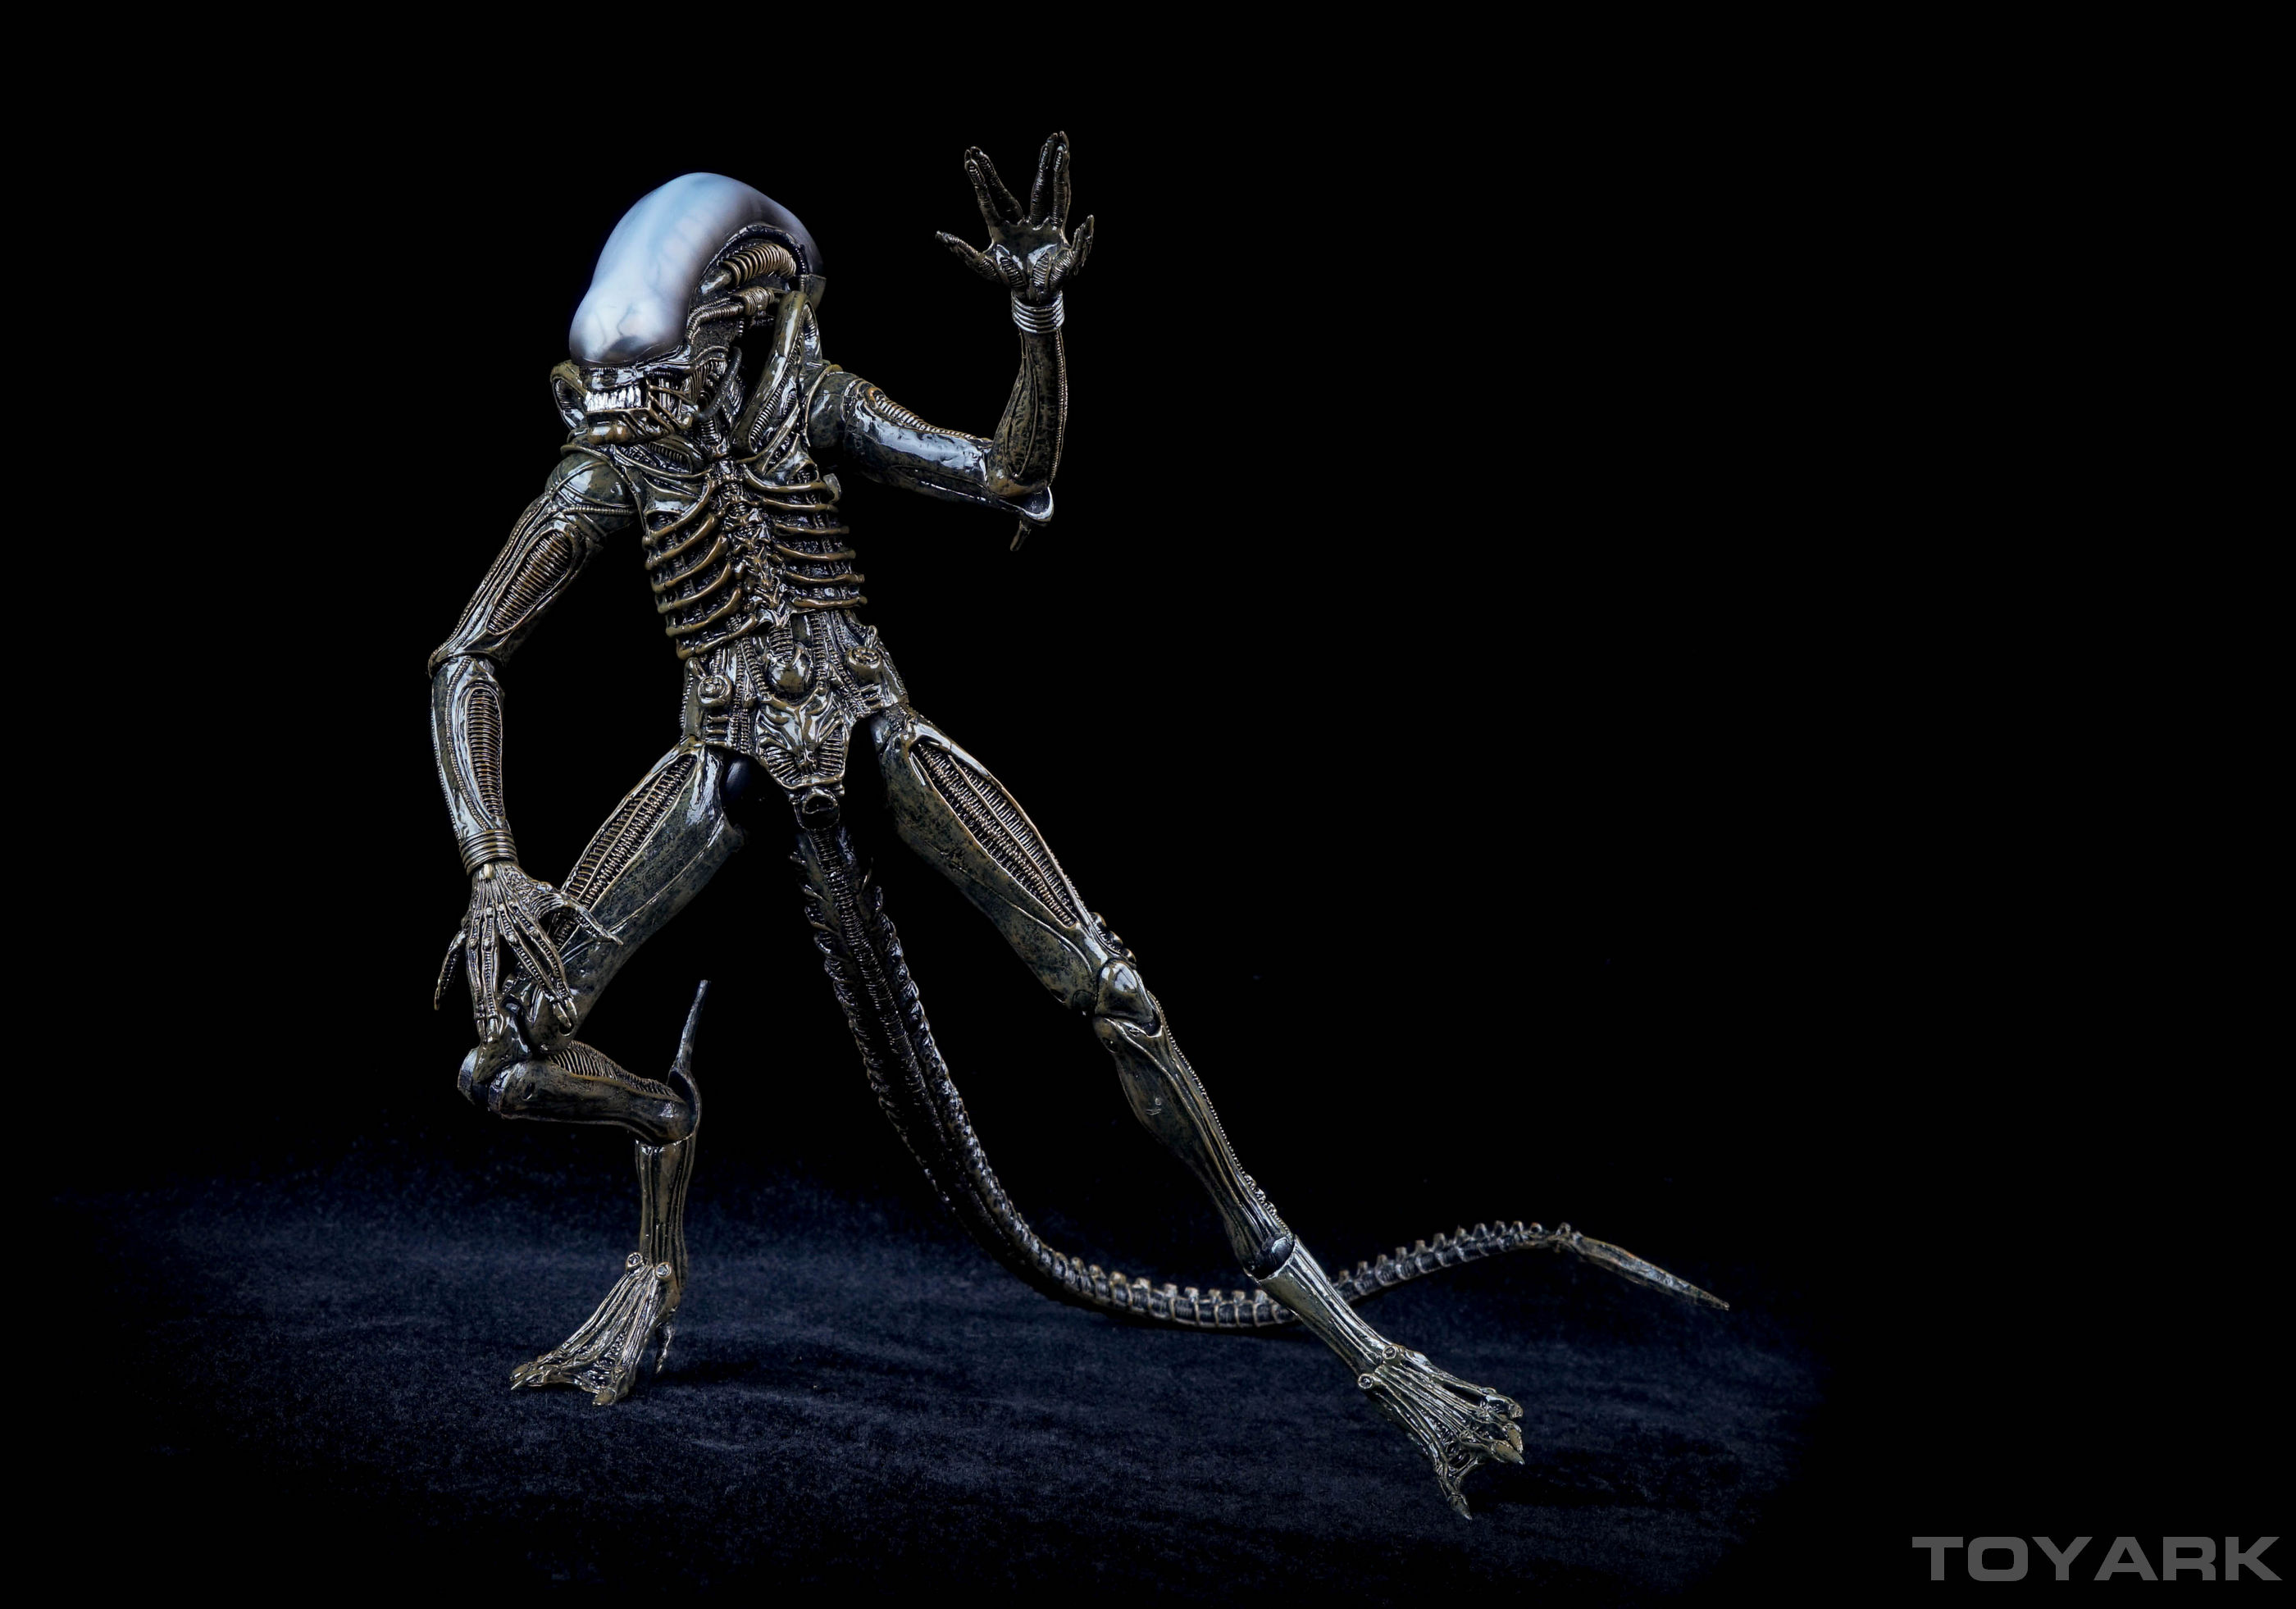 http://news.toyark.com/wp-content/uploads/sites/4/2015/12/NECA-Alien-Isolation-053.jpg